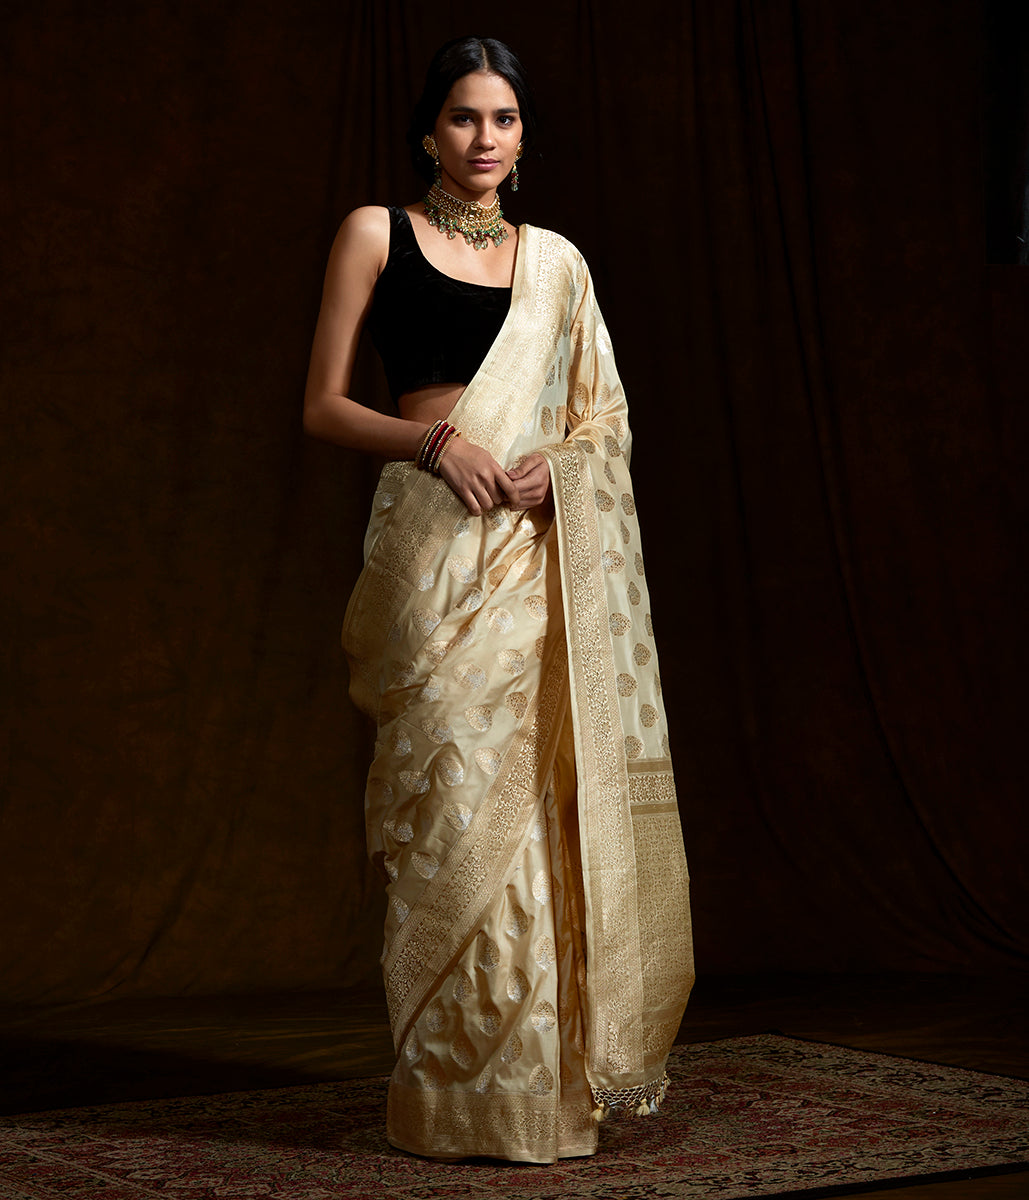 Offwhite Gold and Silver Cutwork Boota Saree woven in pure katan silk